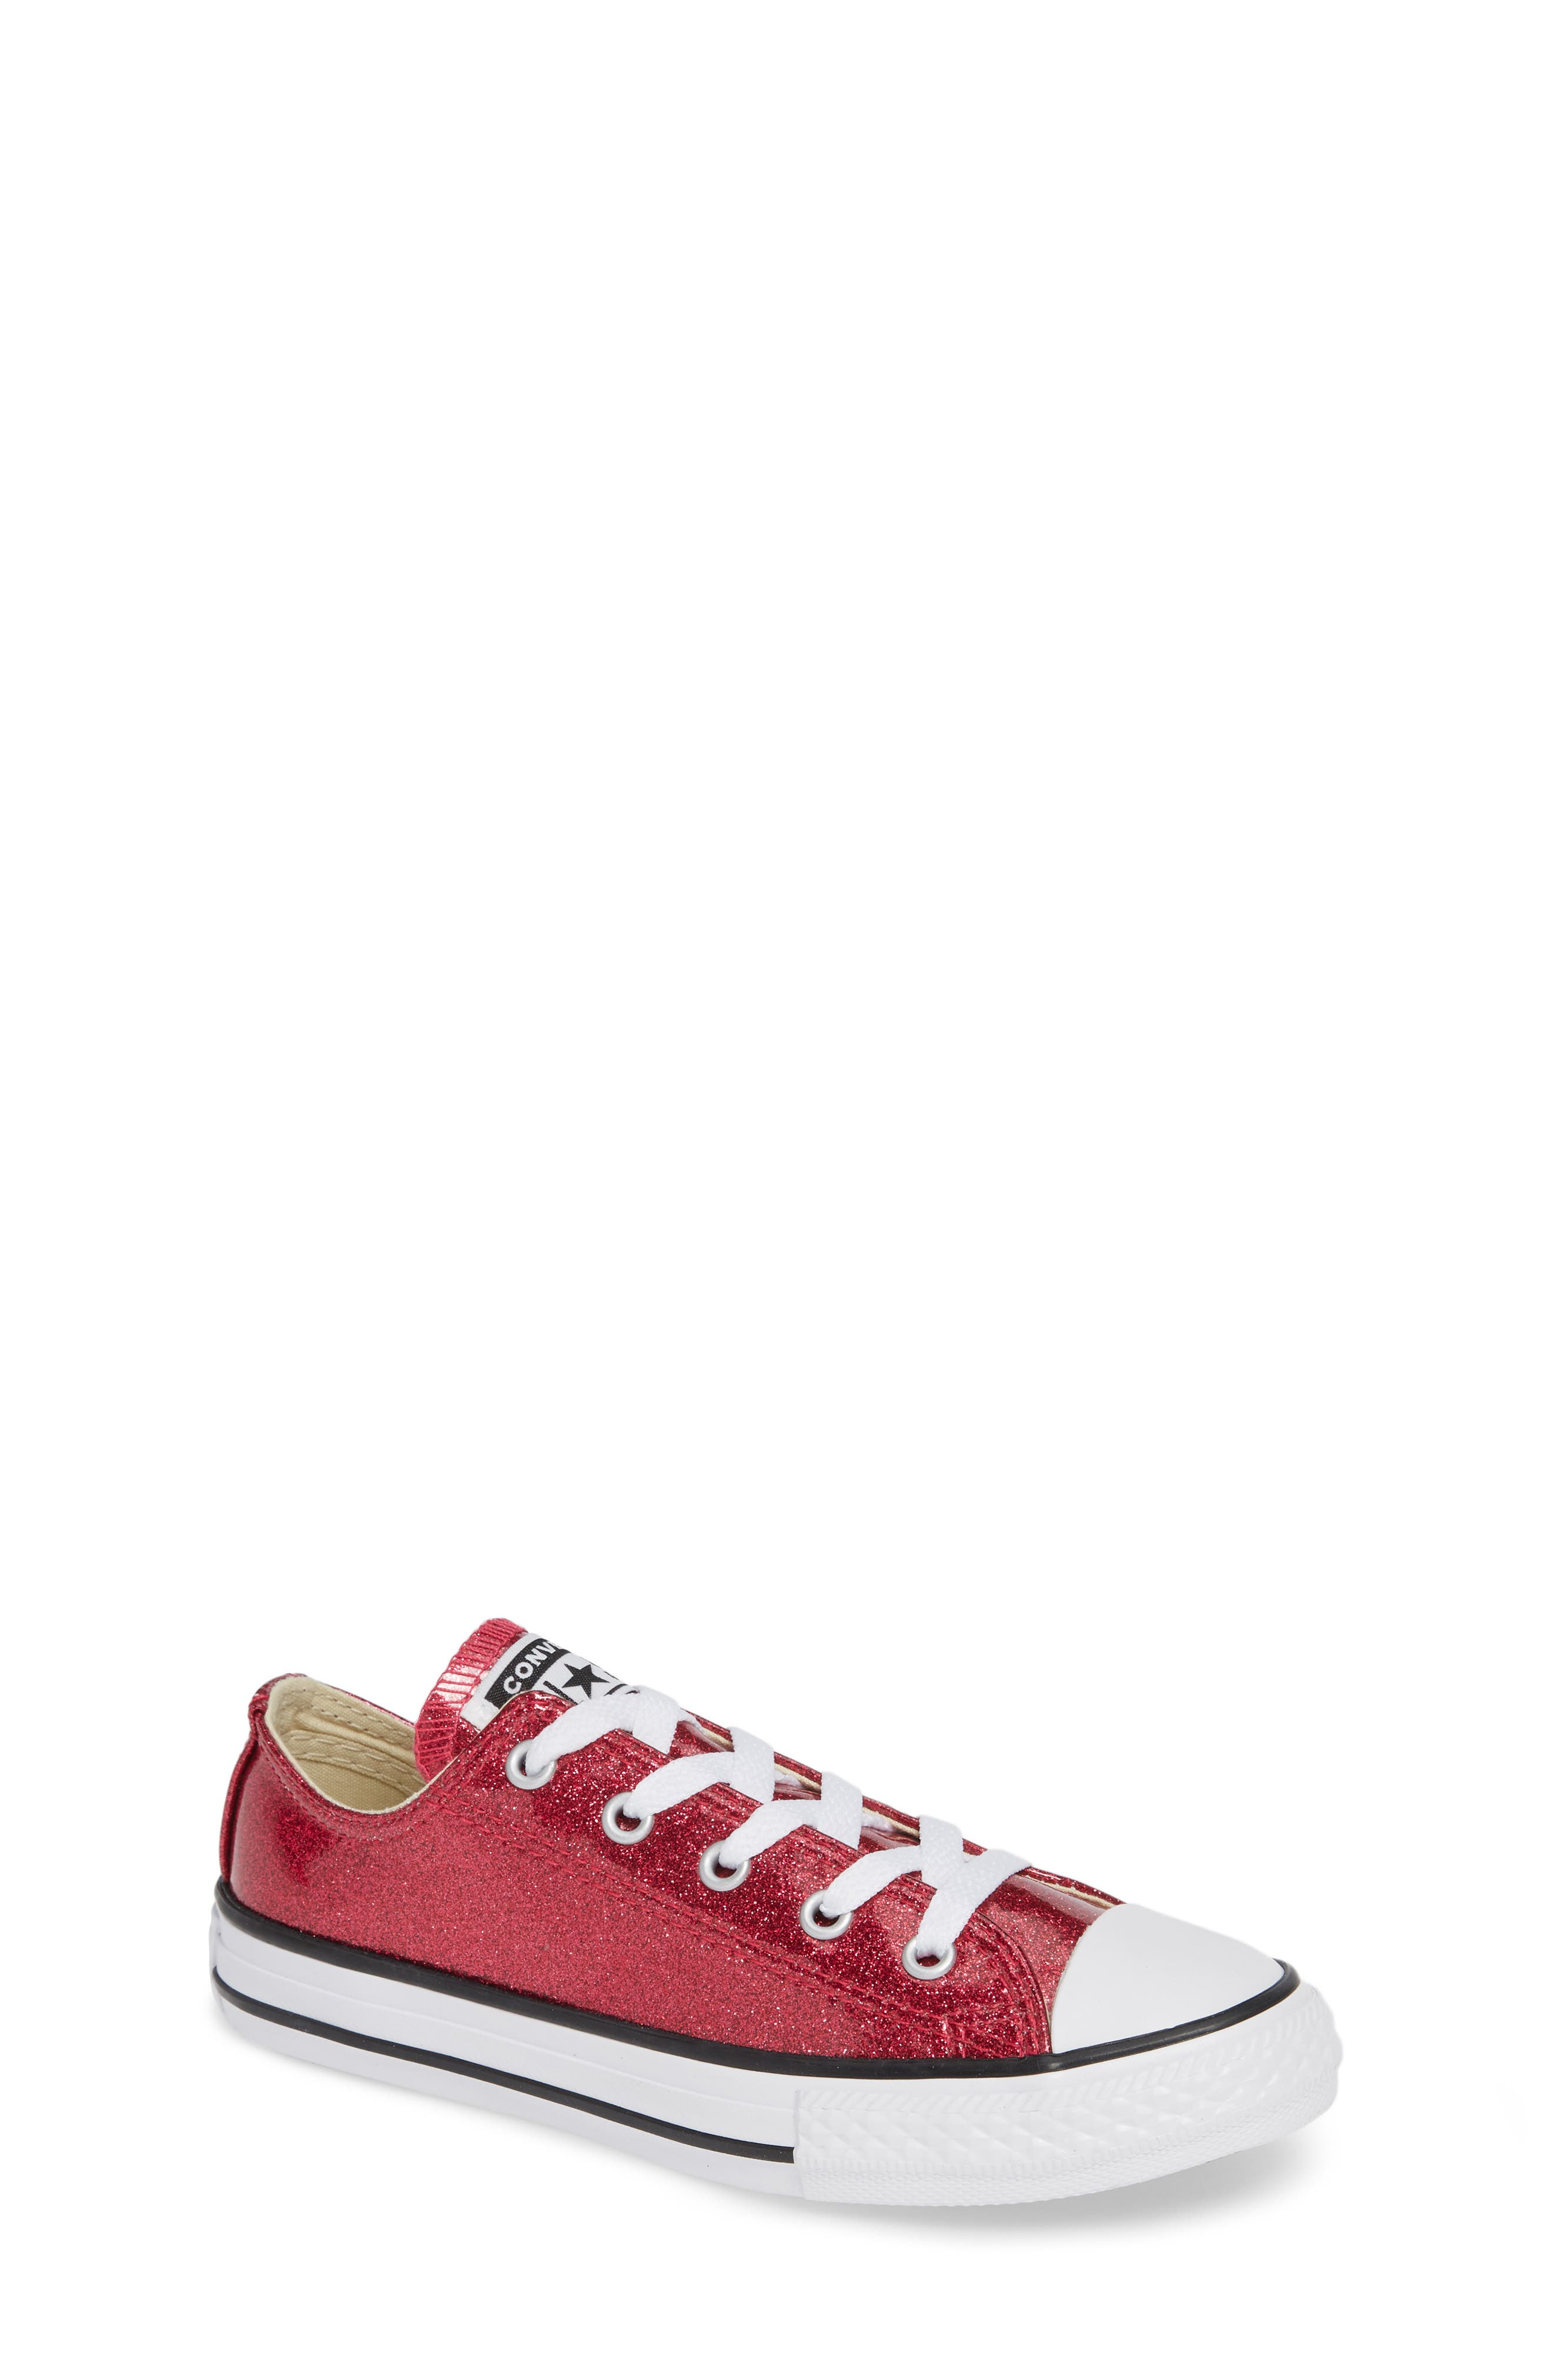 CONVERSE All Star<sup>®</sup> Seasonal Glitter OX Low Top Sneaker, Main, color, PINK POP